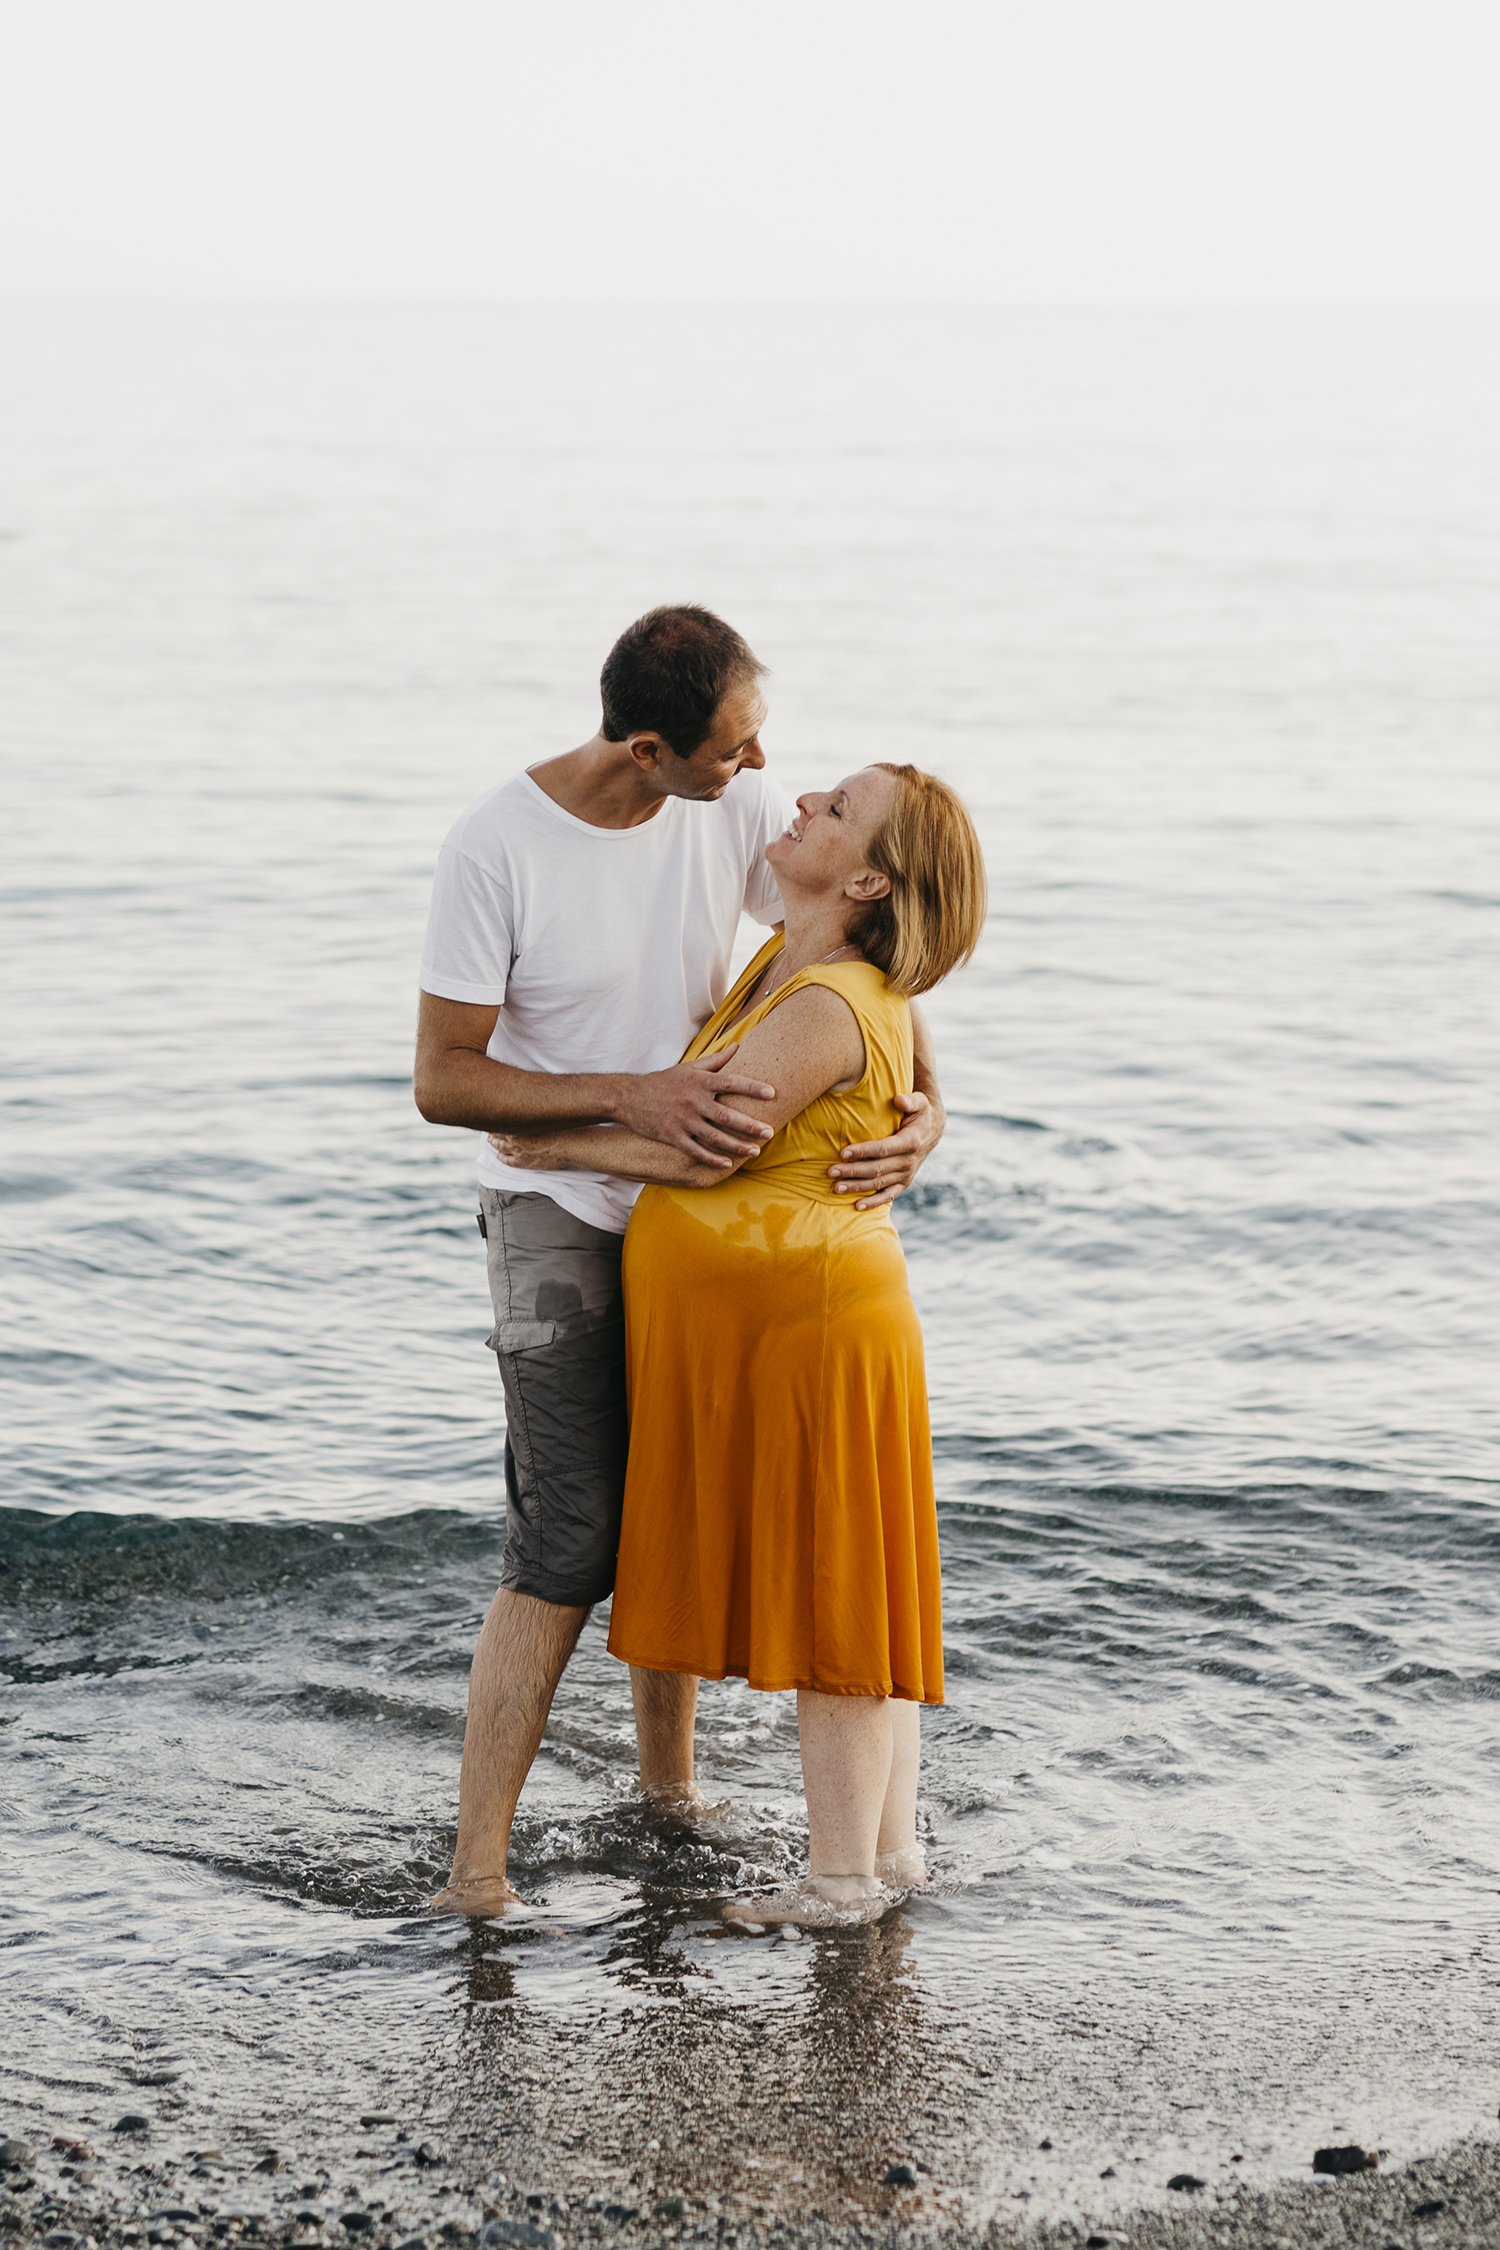 Maternity photographer in Deiva Marina, Italy.  Mom and dad kissing out of  the water. Rebecca Rinaldi Photography. Family lifestyle photographer in Italy.